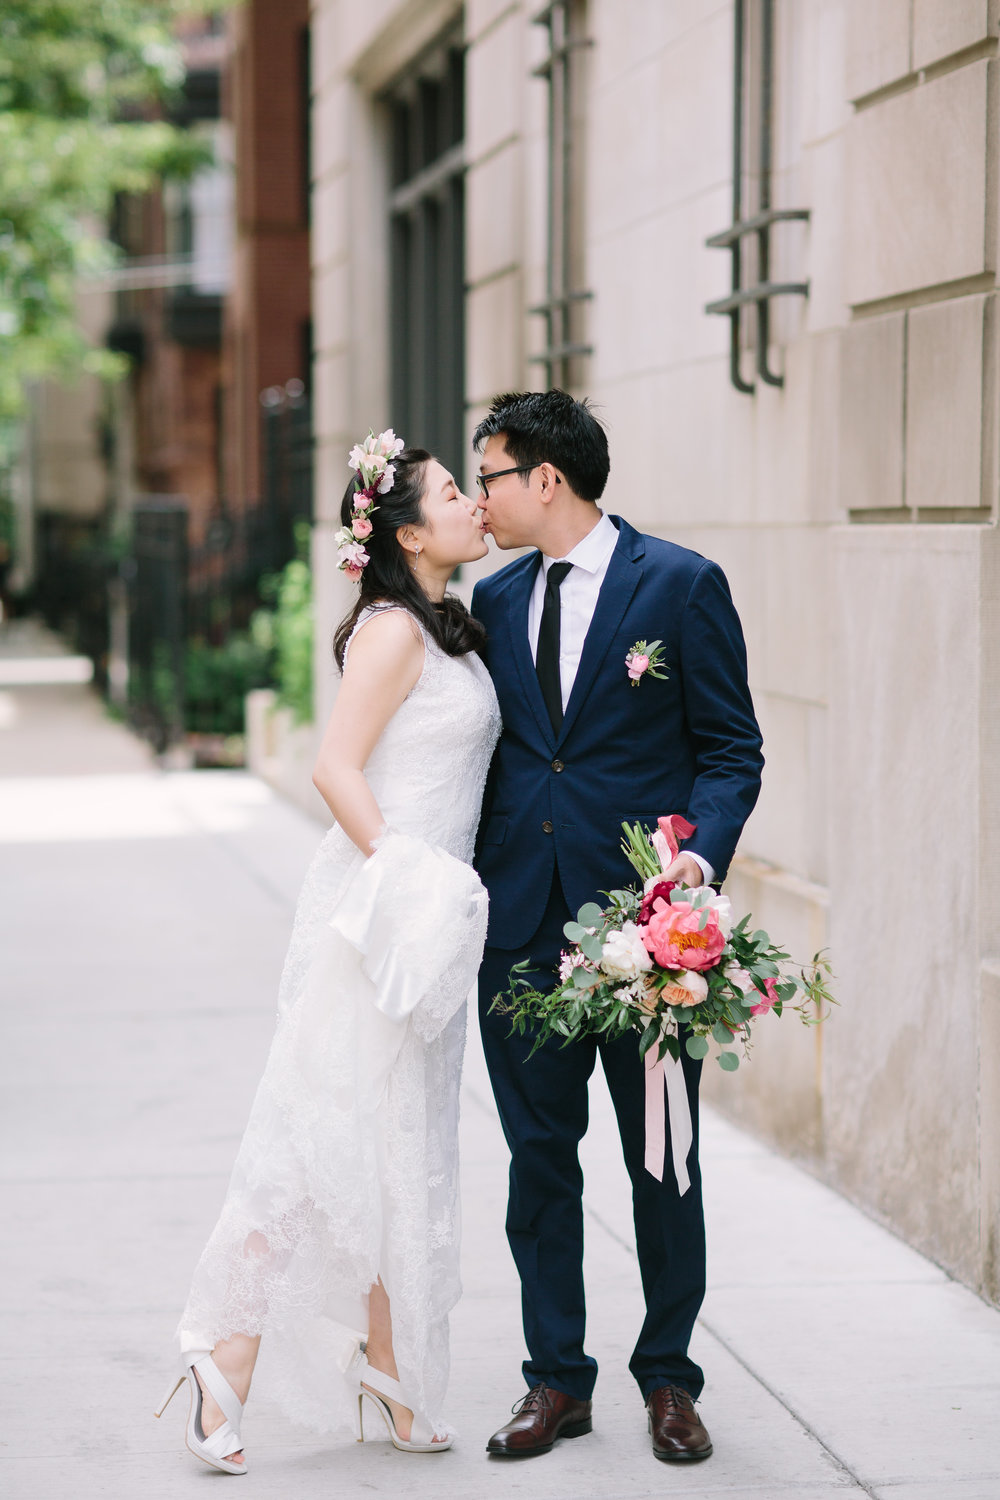 Nicodem Creative-Wang Wedding-Public Hotel Chicago-13.jpg